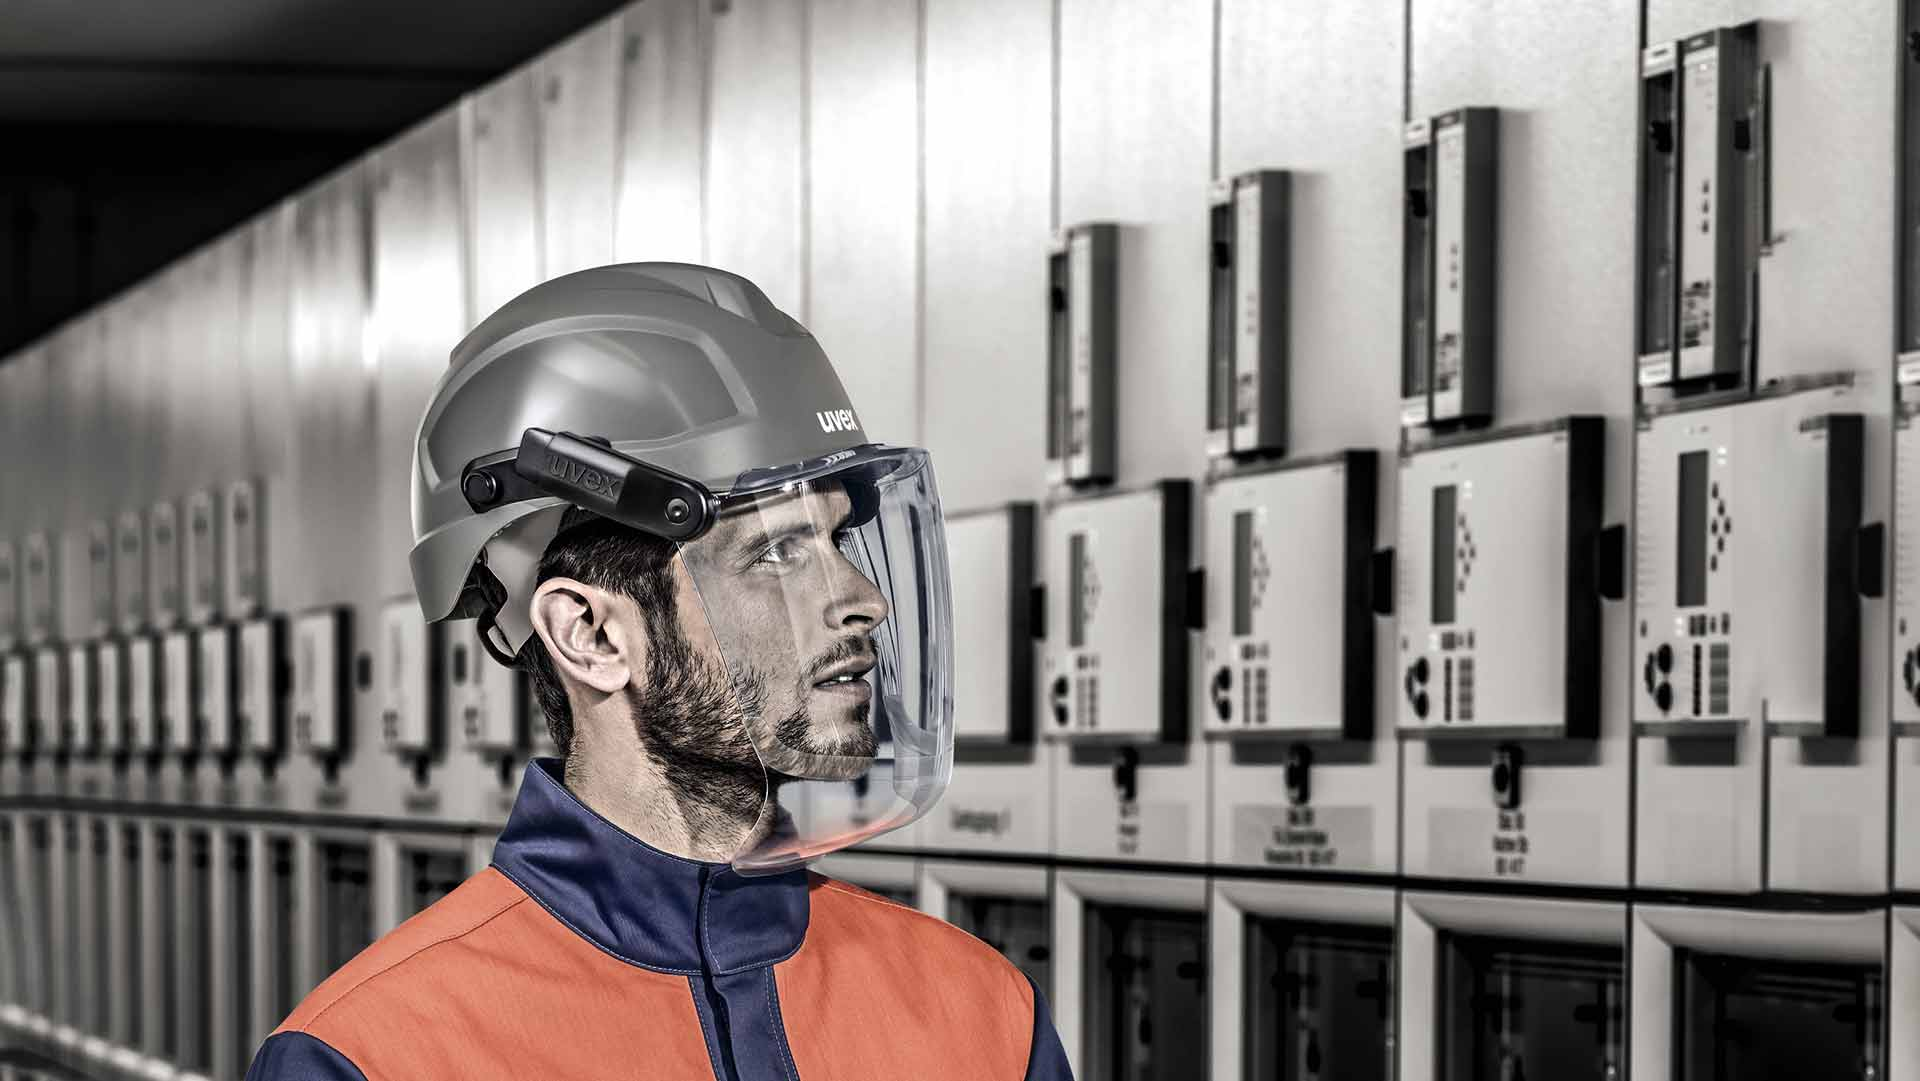 Male employee wearing uvex safety helmet with visor